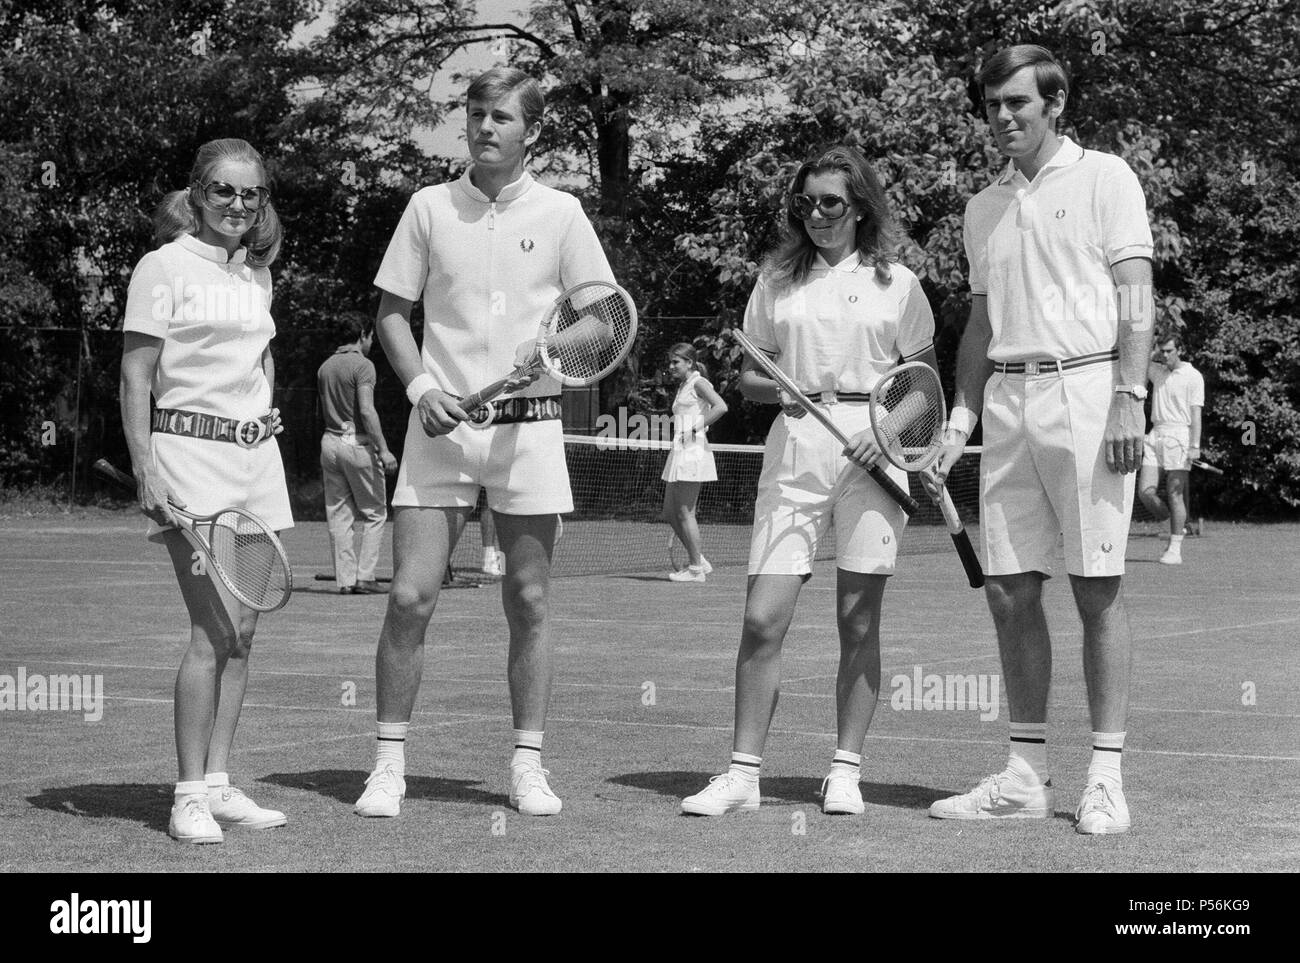 Pre Wimbledon at the Hurlingham Club. Unisex fashions by Fred Perry. 21st June 1970. - Stock Image